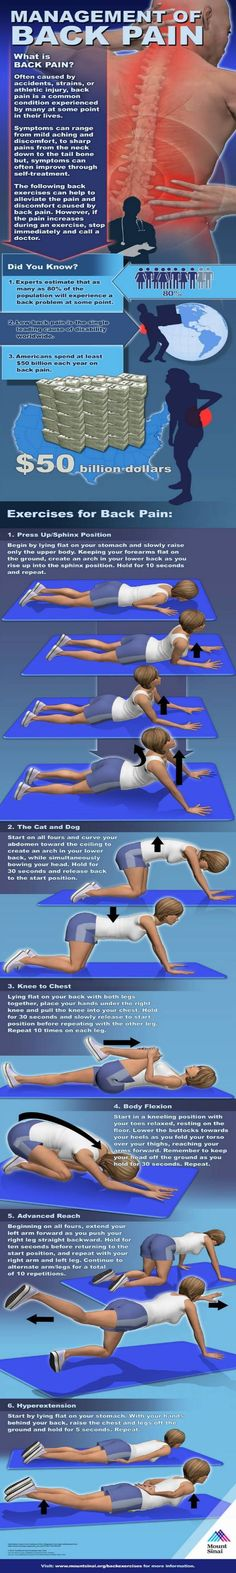 exercises to help sciatica pain